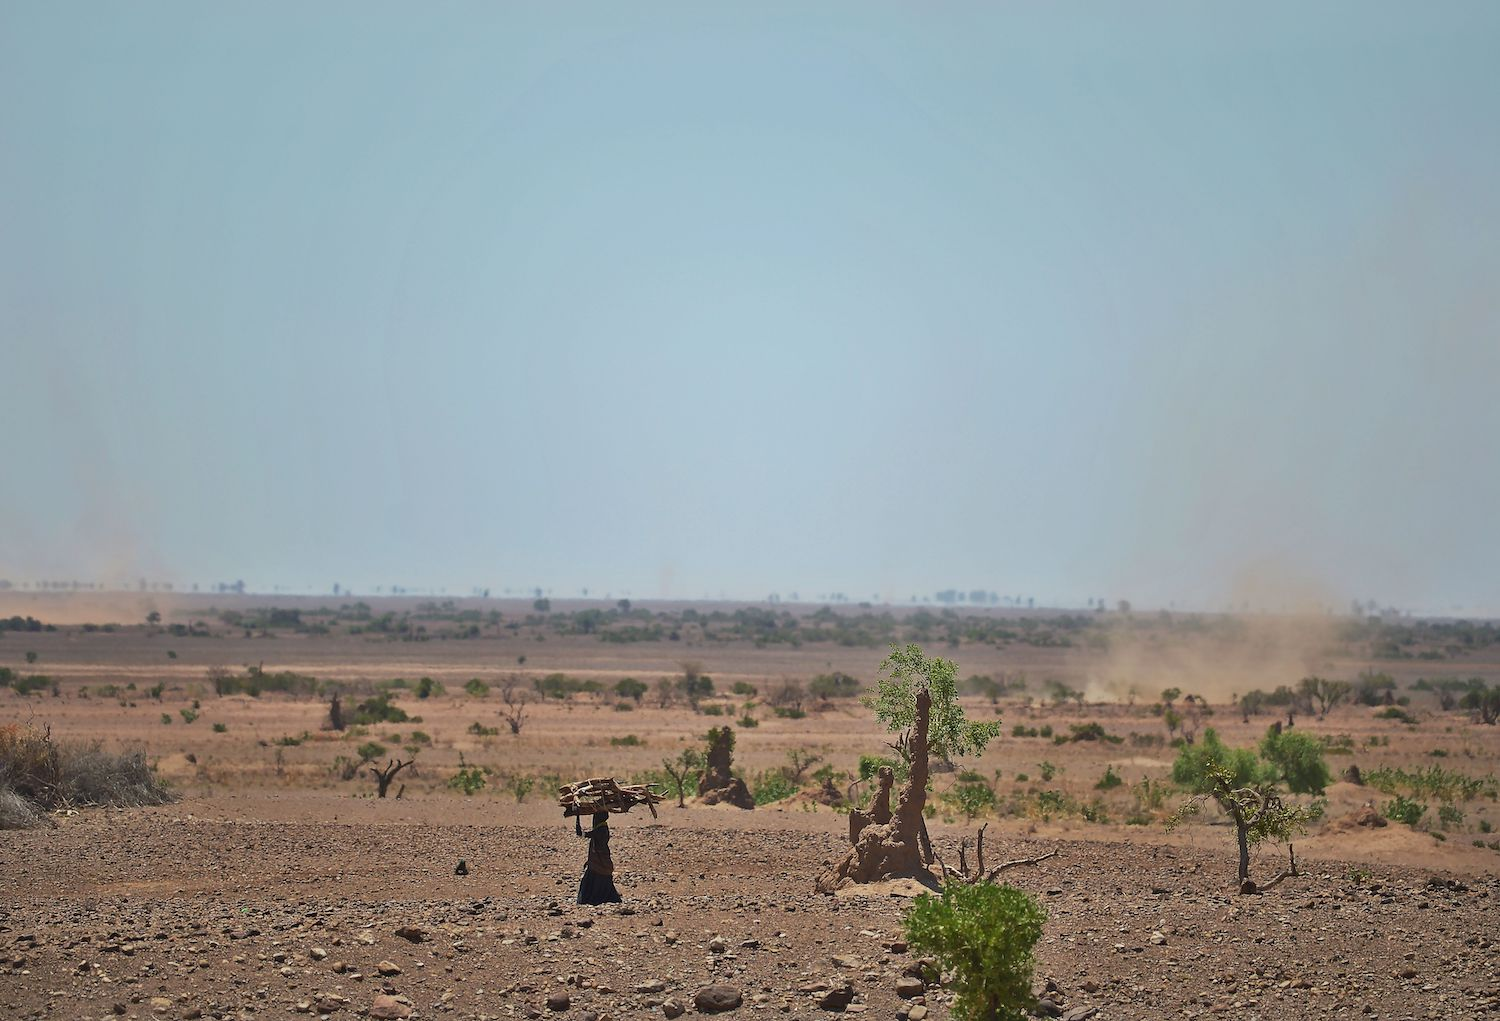 foreignpolicy.com - Lauren Evans - In Northern Kenya, the Climate Crisis Shifts Gender Roles